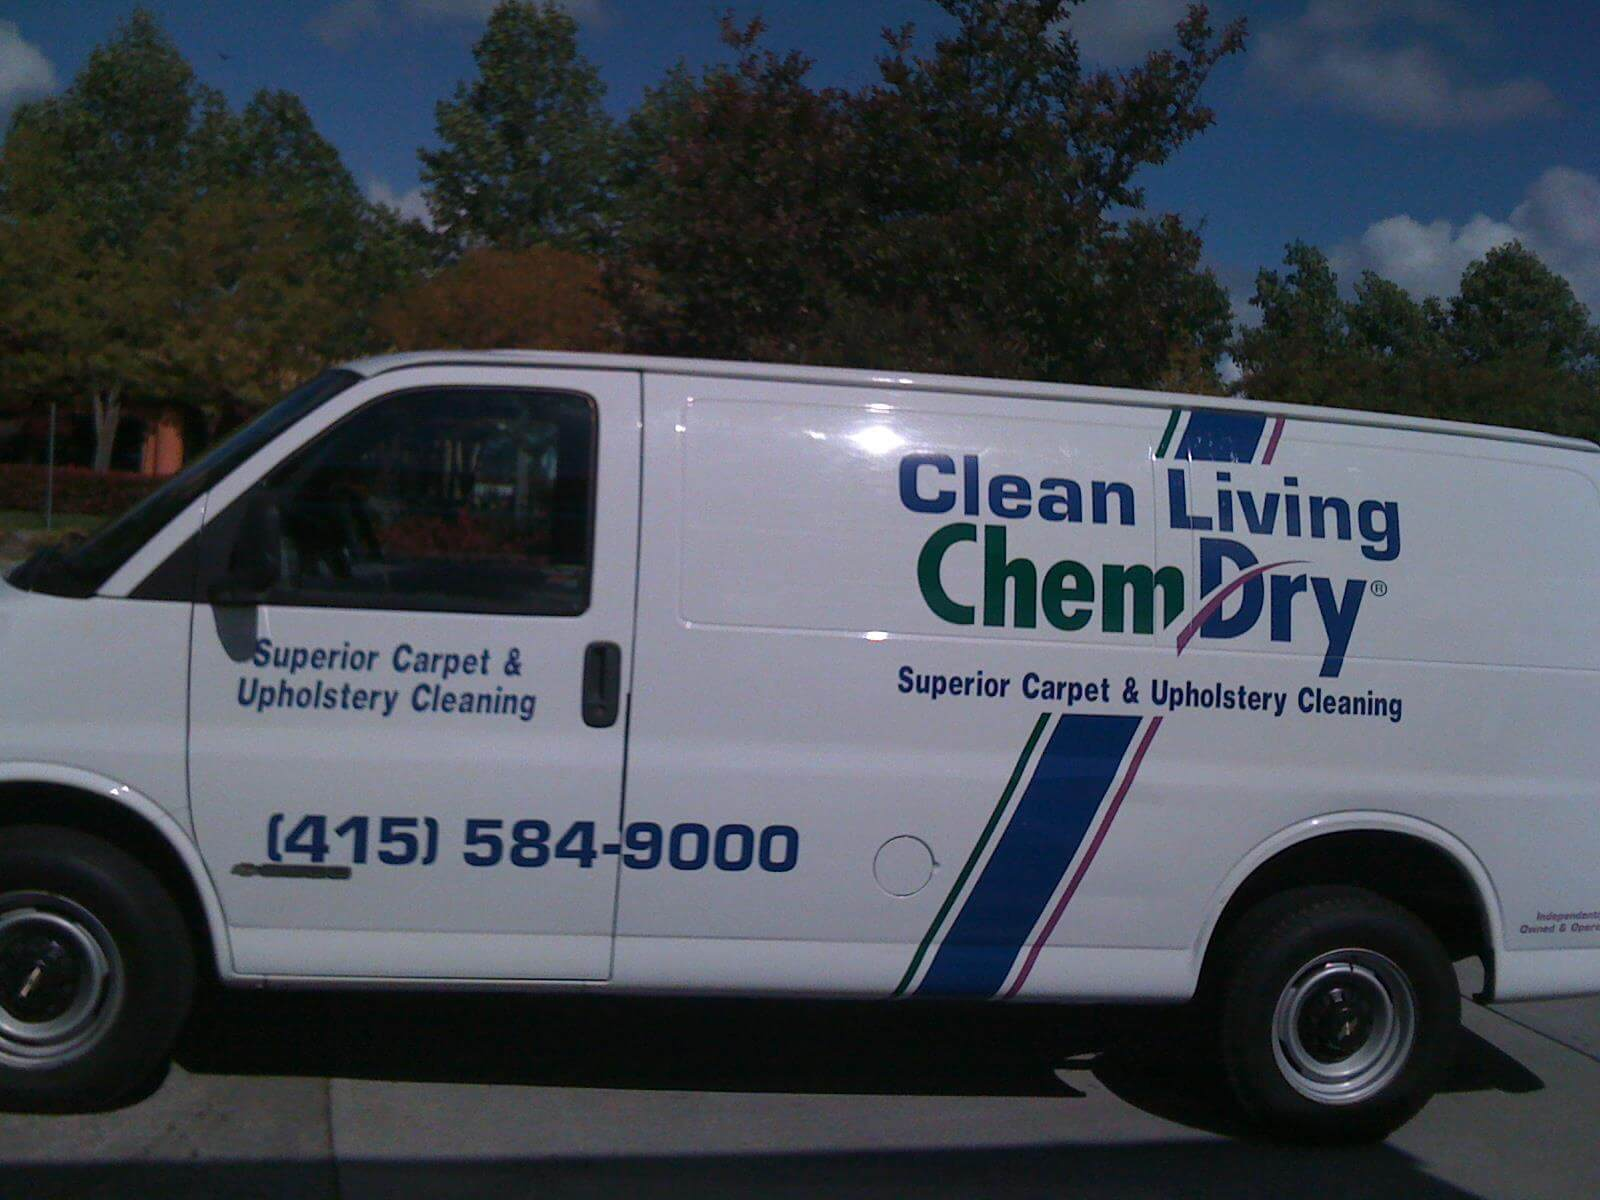 Clean Living Chem-Dry is here to help you have a healthier home